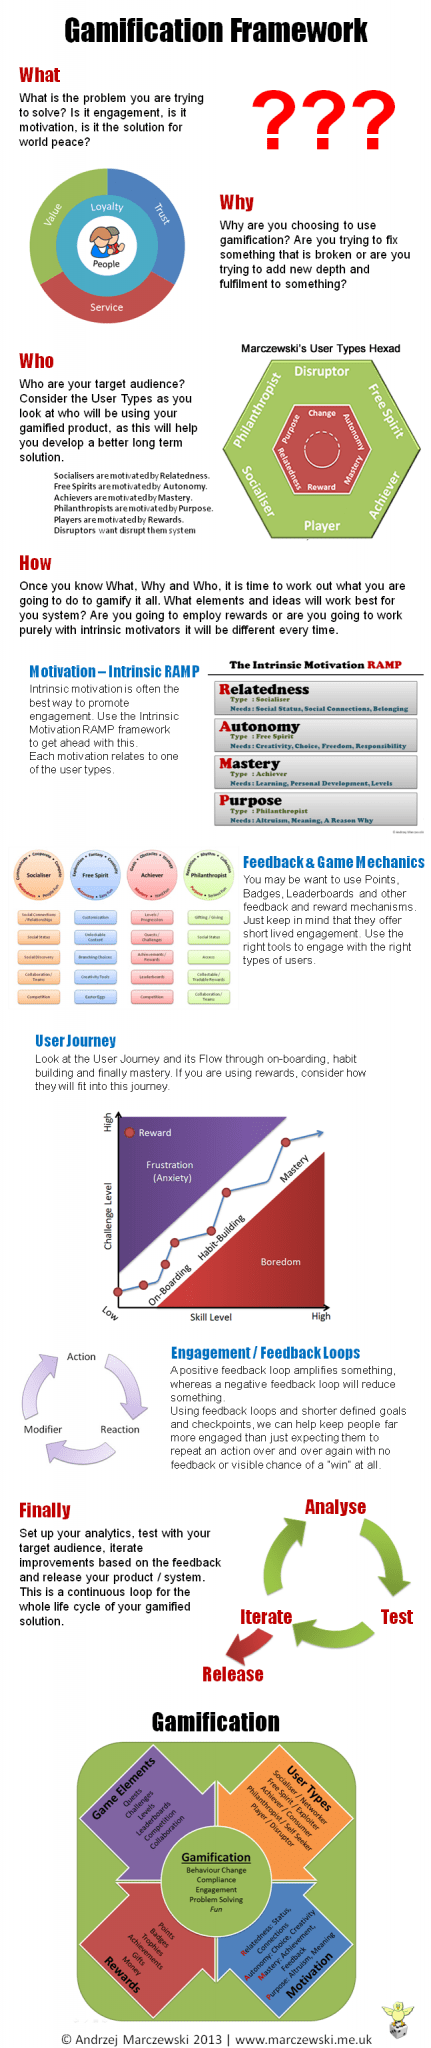 Gamification infographic large11 A Simple Gamification Framework Cheat Sheet